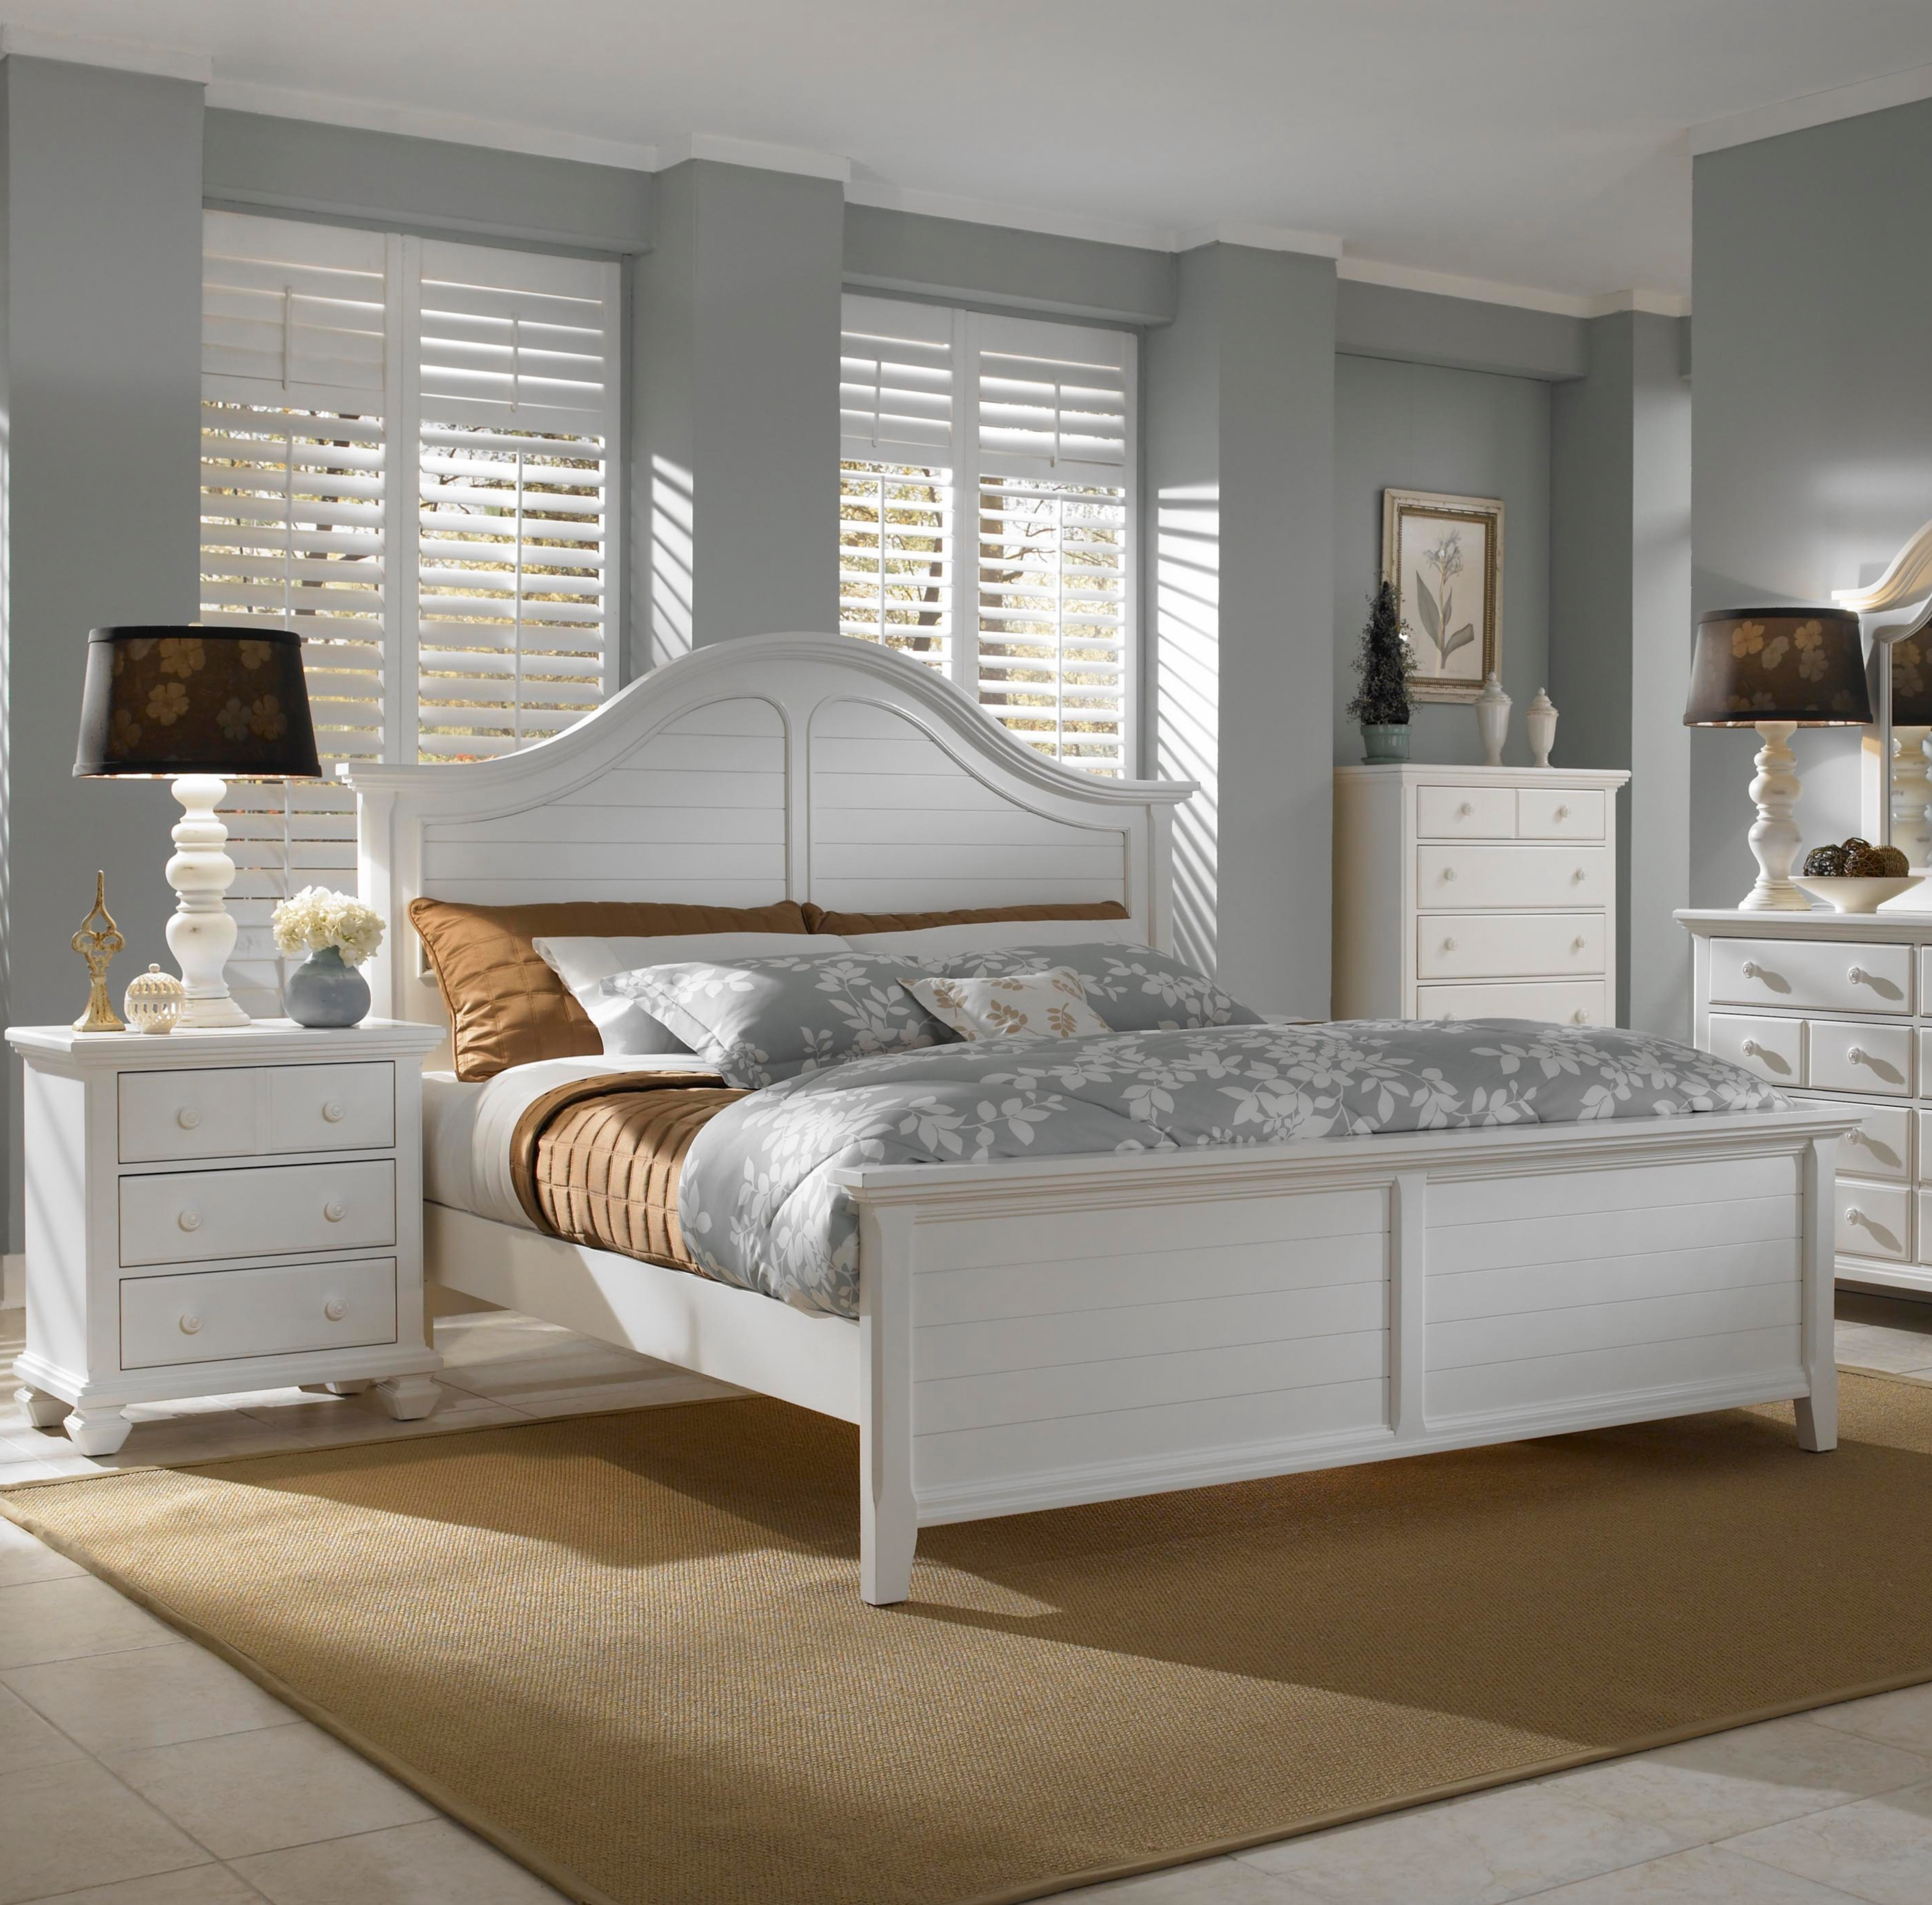 White Small Scale Bedroom Furniture